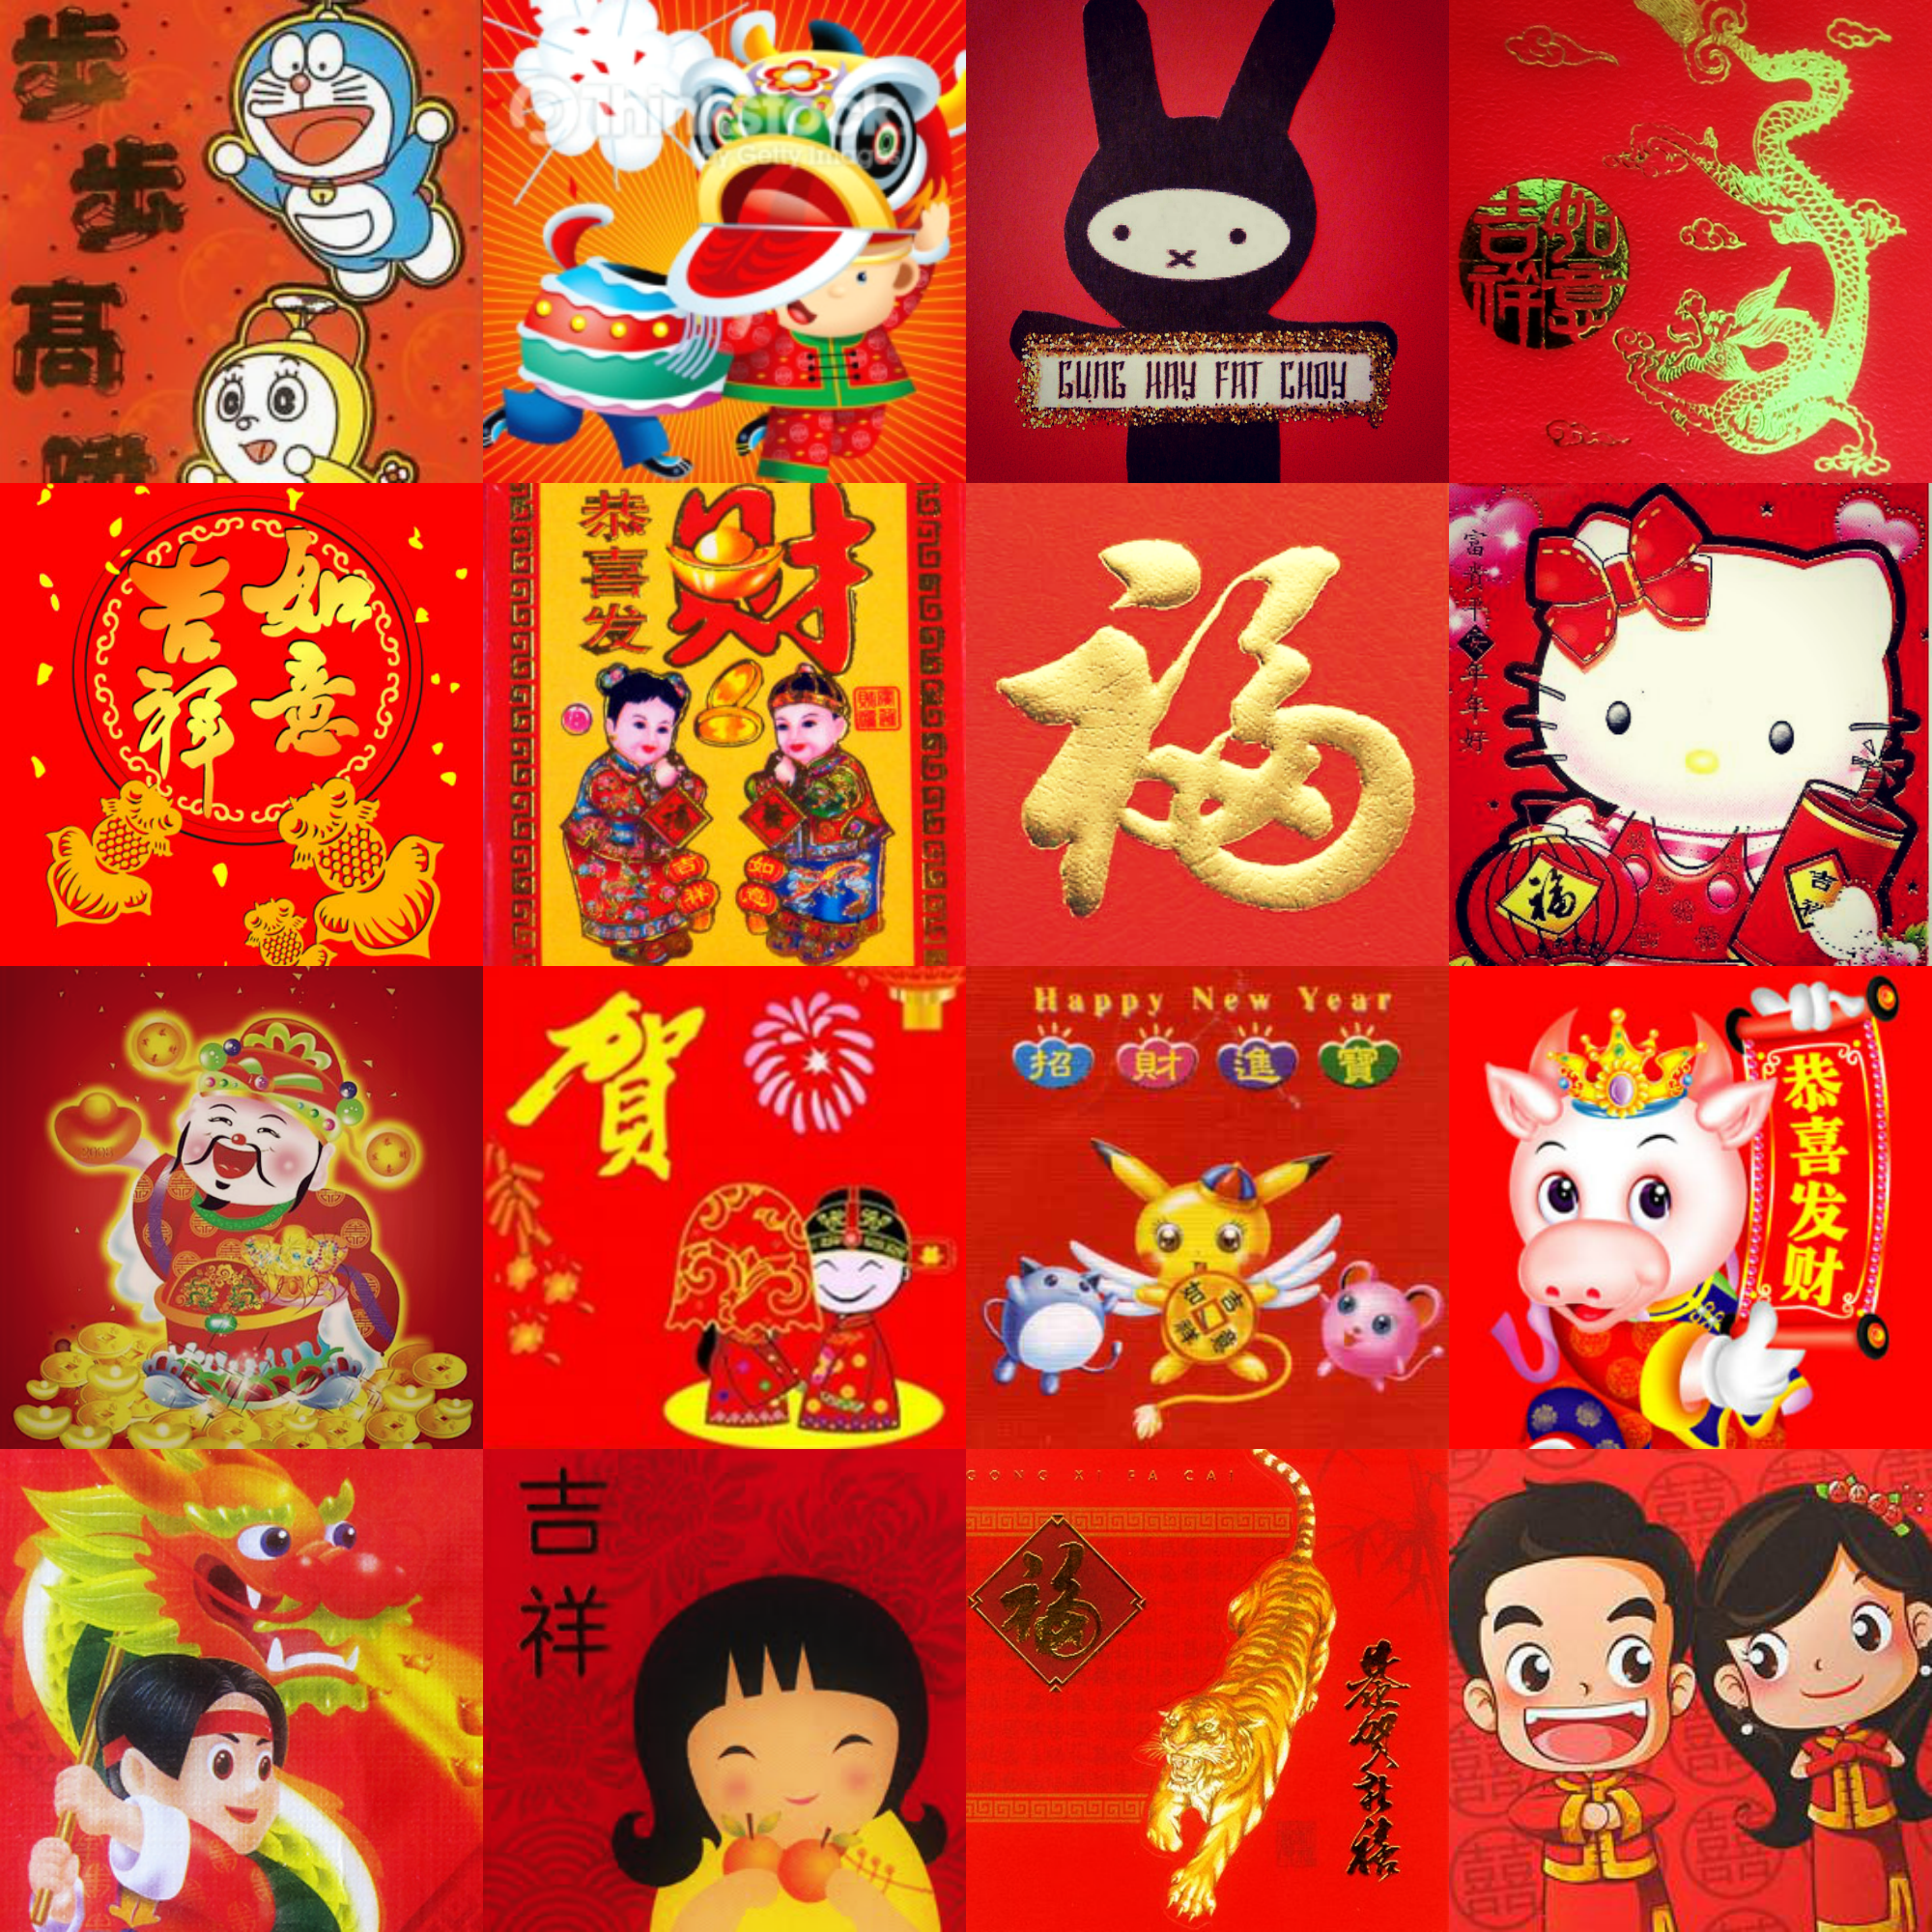 chinese new year red envelopes gallery - Chinese New Year Red Envelope